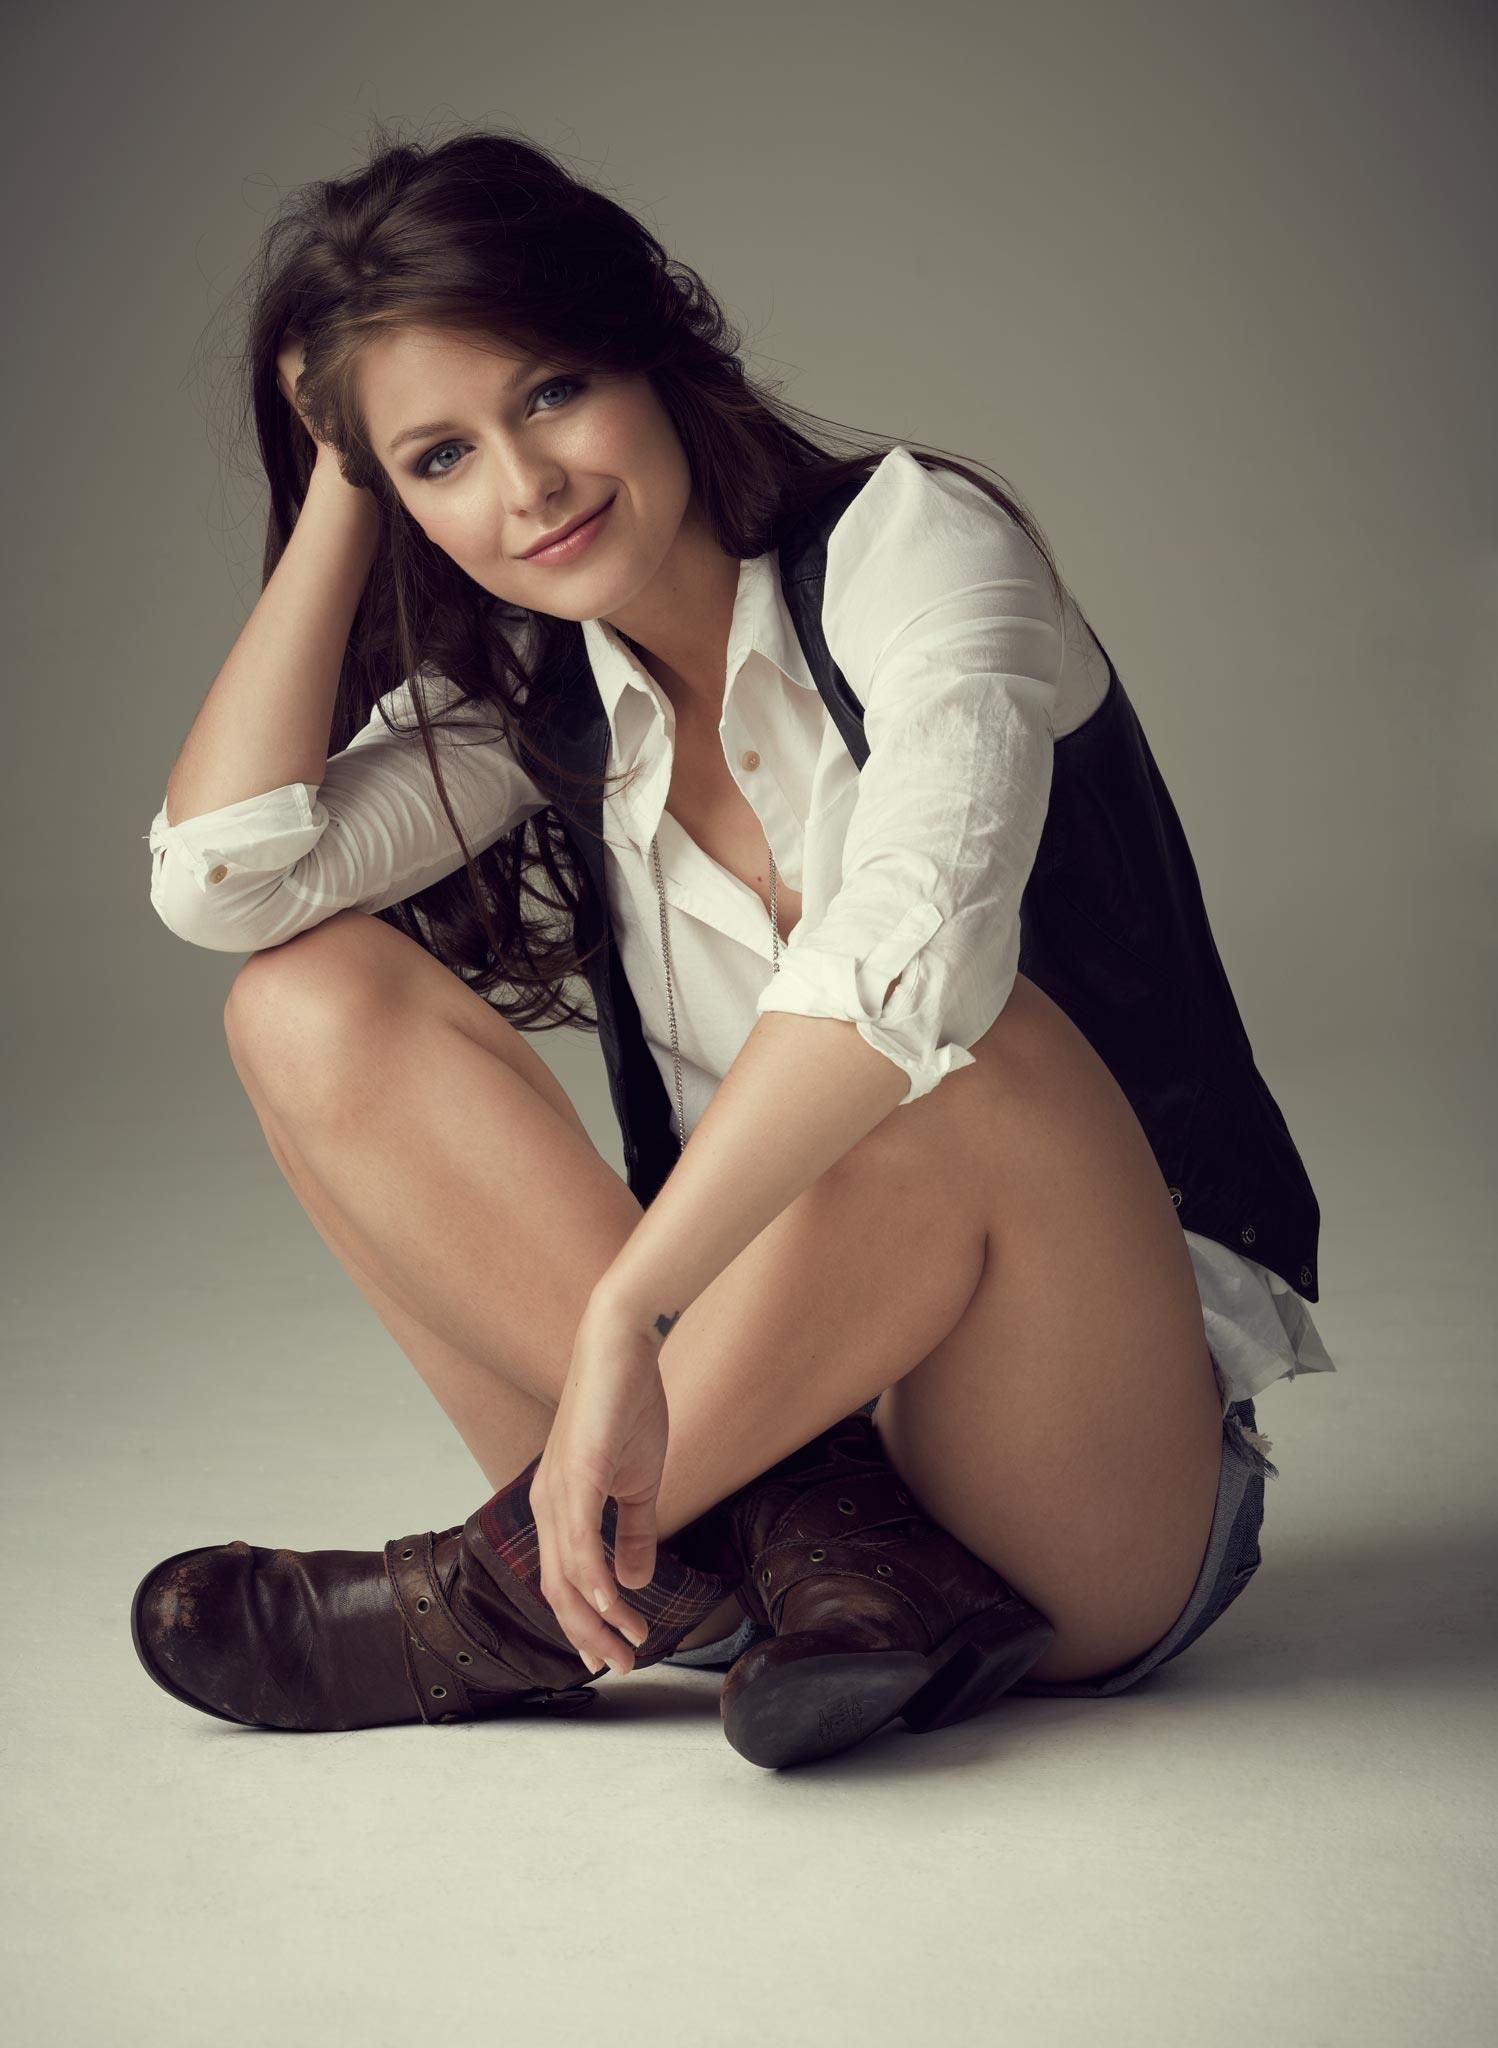 20 Hot Pictures of Melissa Benoist a.k.a Supergirl With